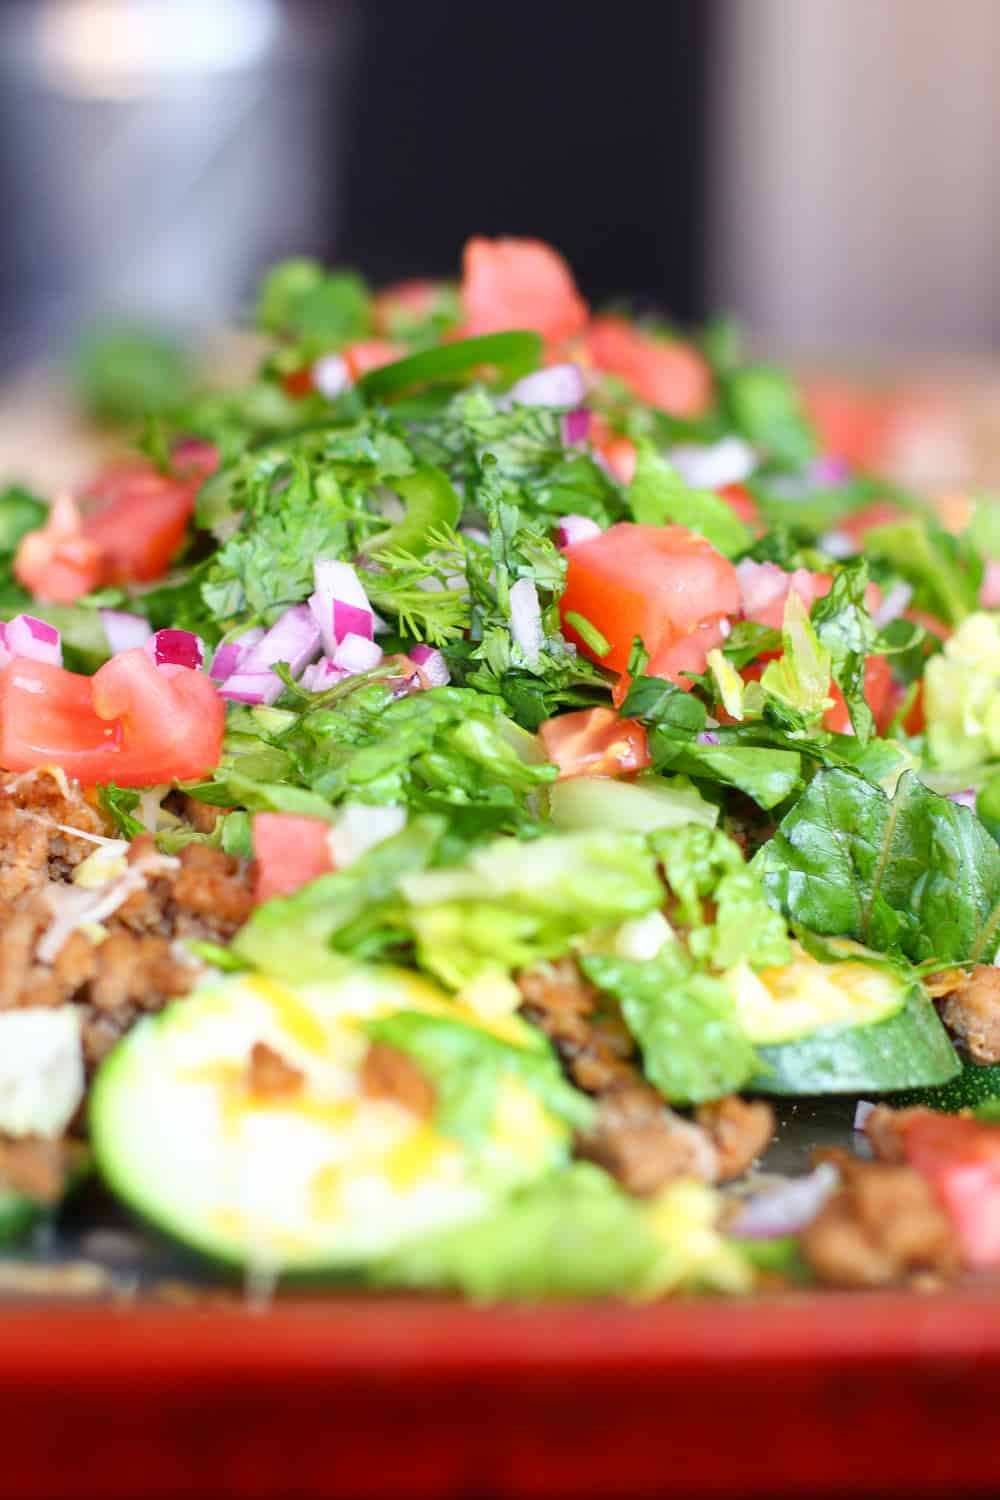 Pile of zucchini nachos with fake meat crumbles, tomato, onion, and lettuce